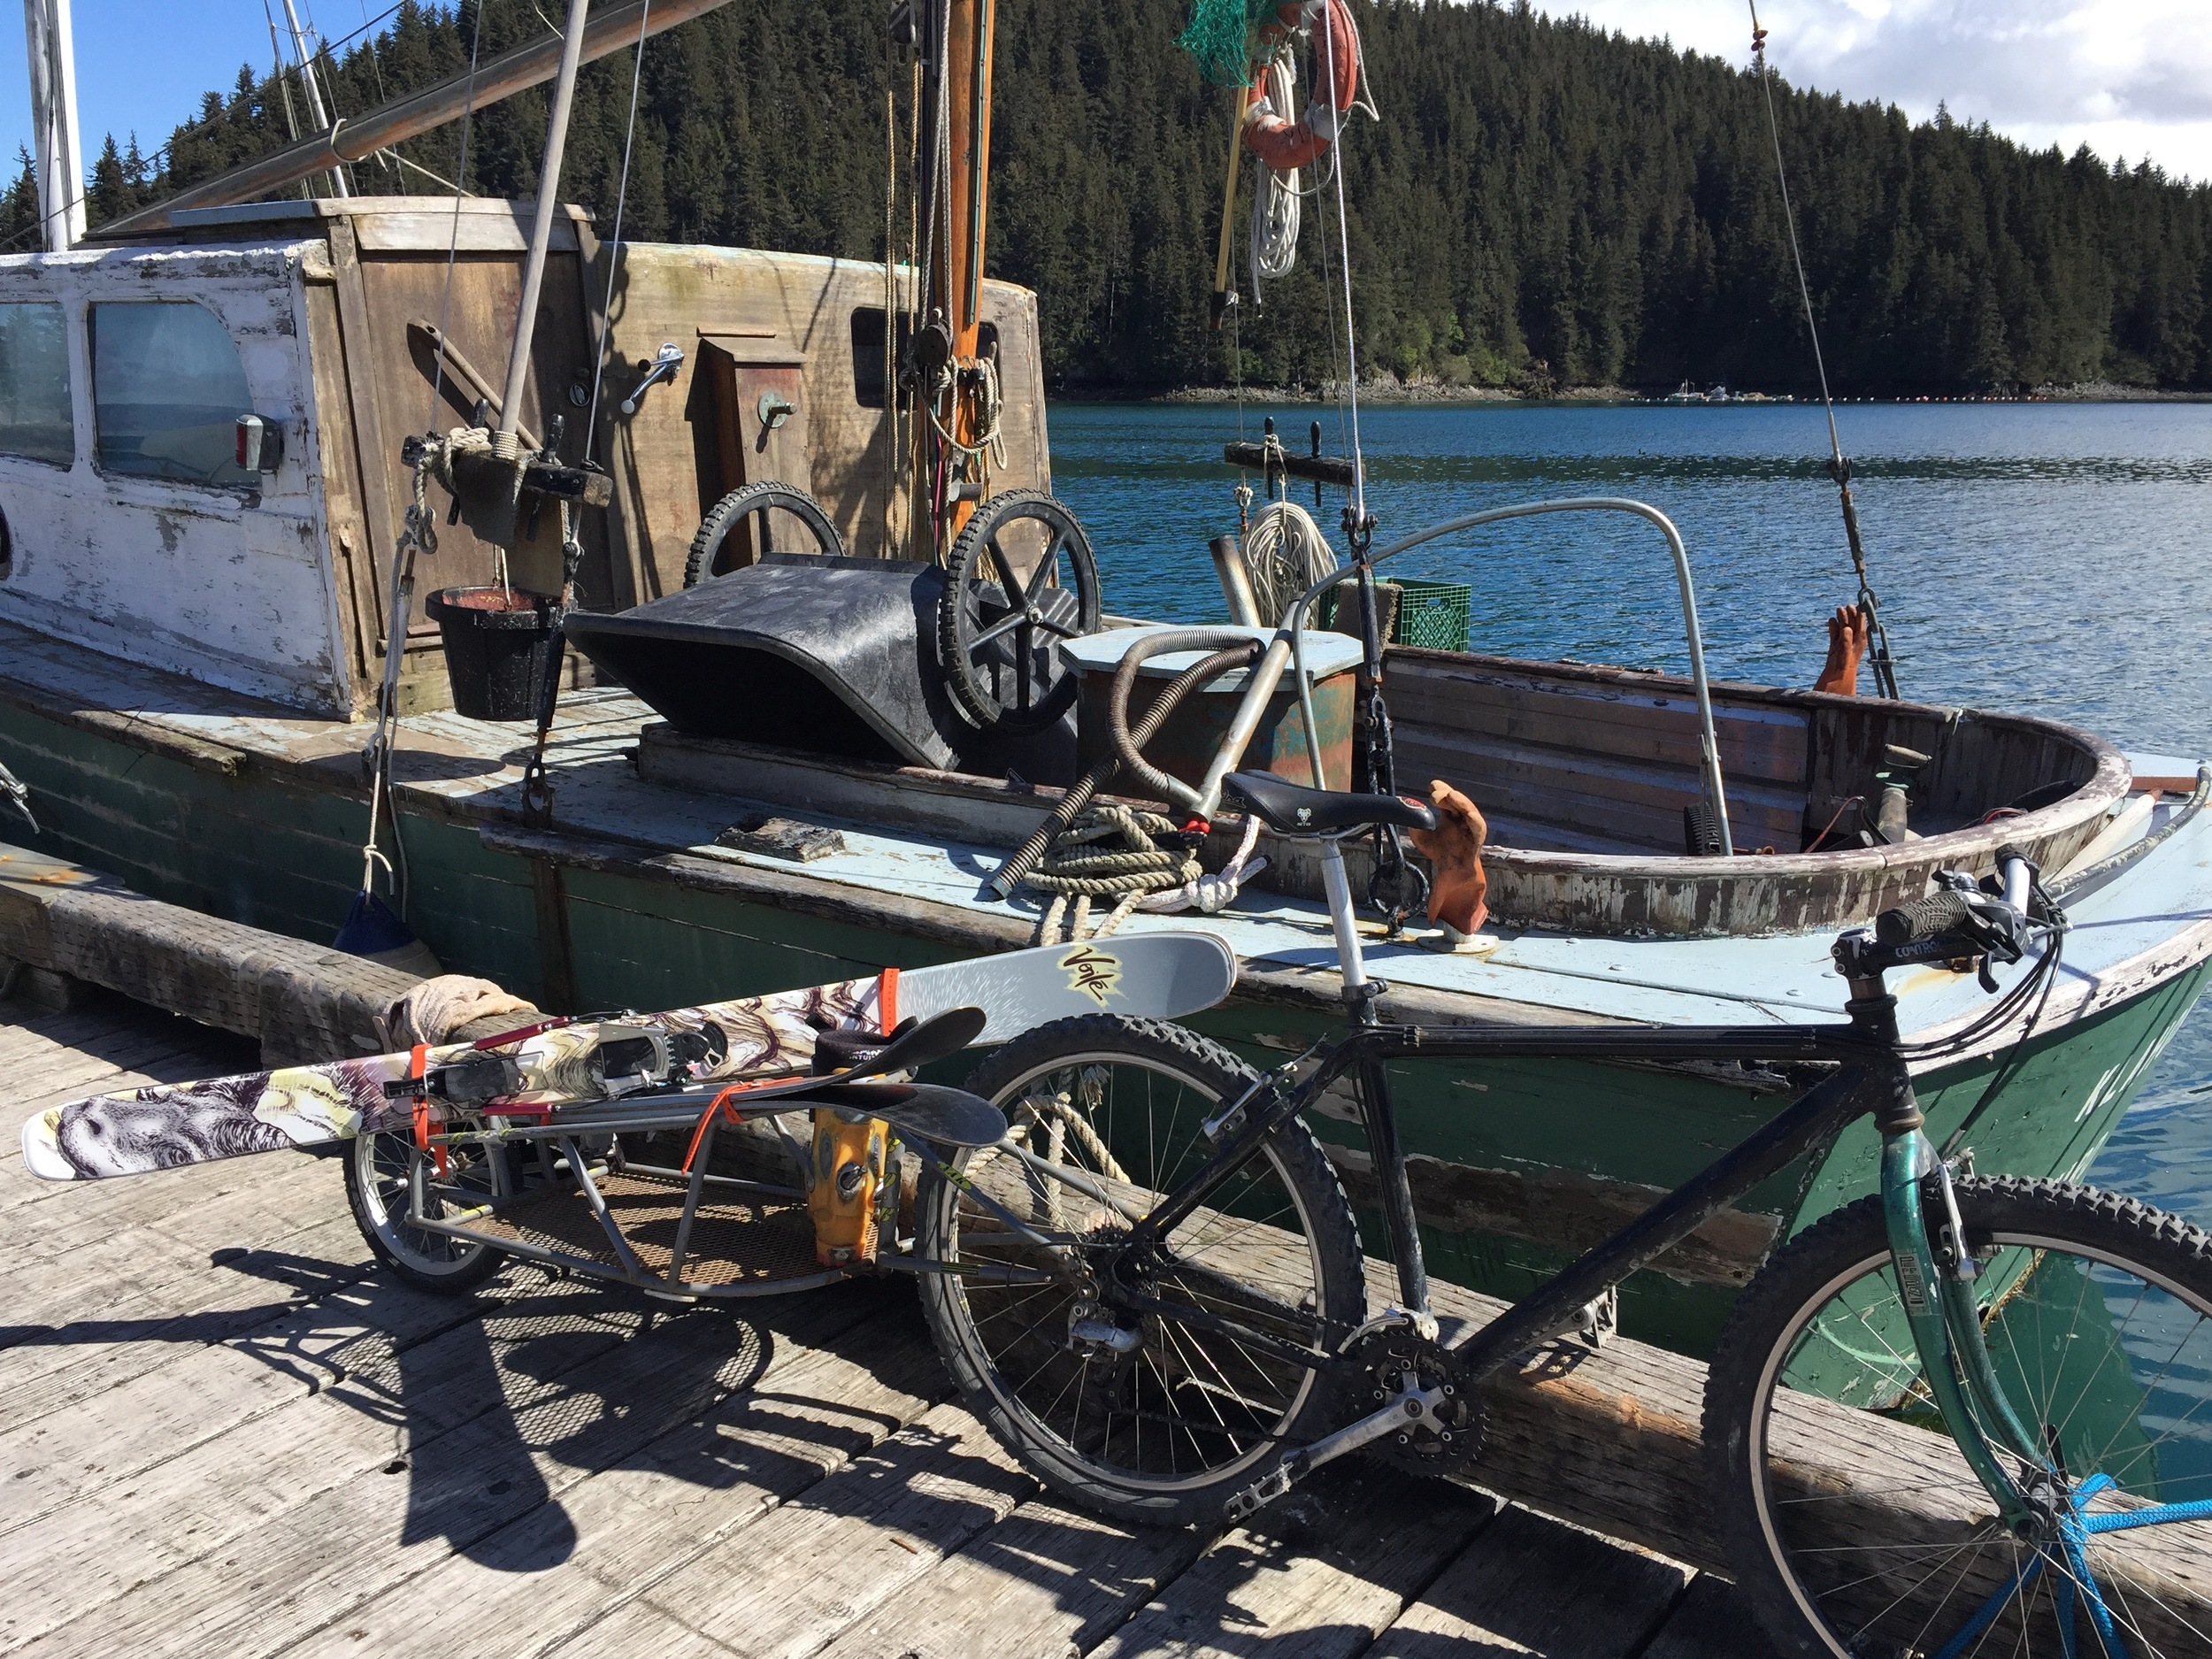 Getting ready to go skiing at the Jakolof Bay Dock next to a neat old wooden boat.